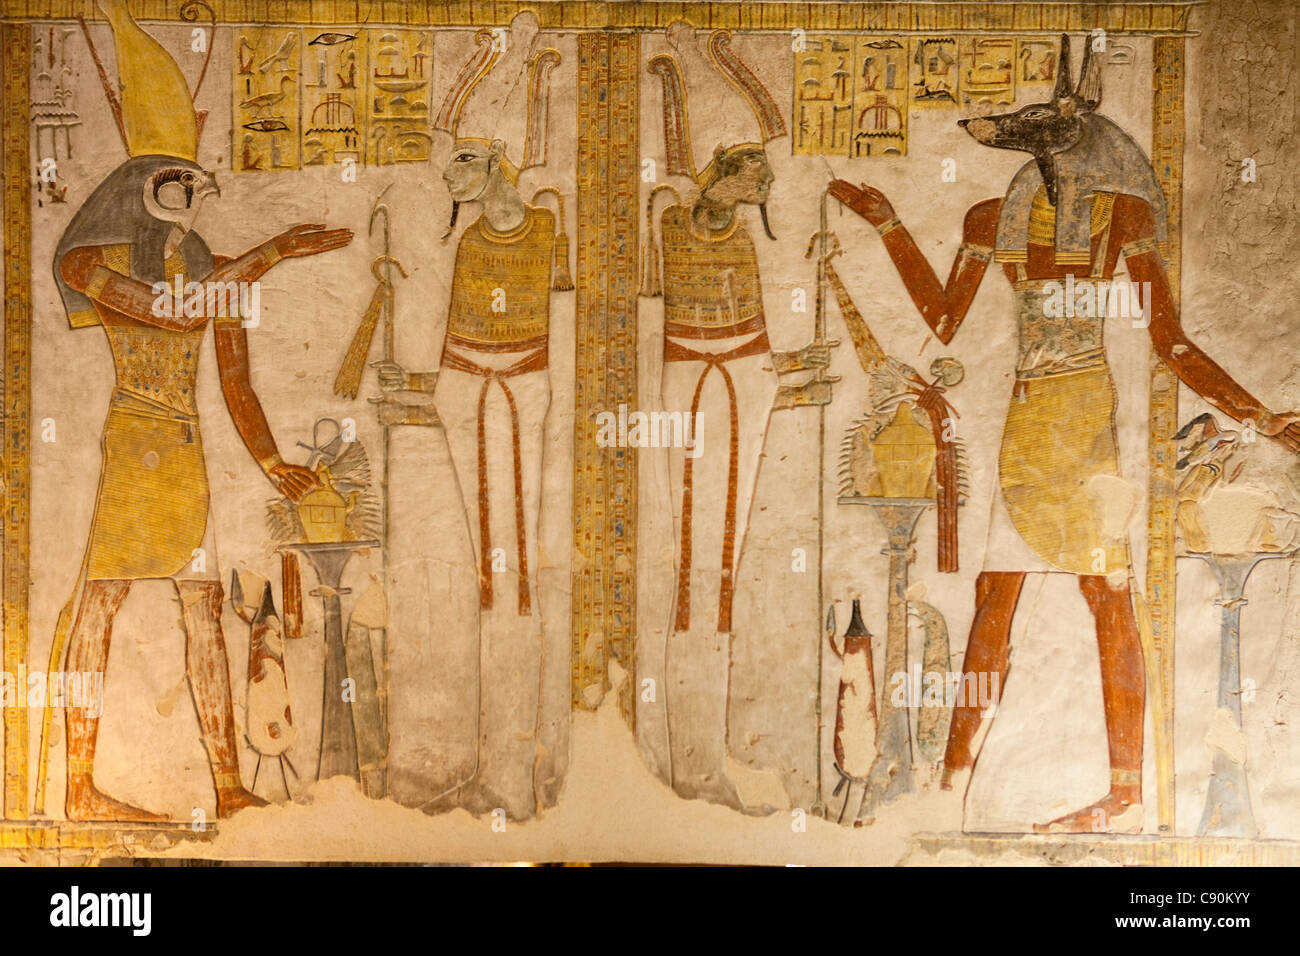 Painting in the Tomb of Tutankhamun, Valley of the Kings, Luxor, ancient Thebes, Egypt, Africa - Stock Image